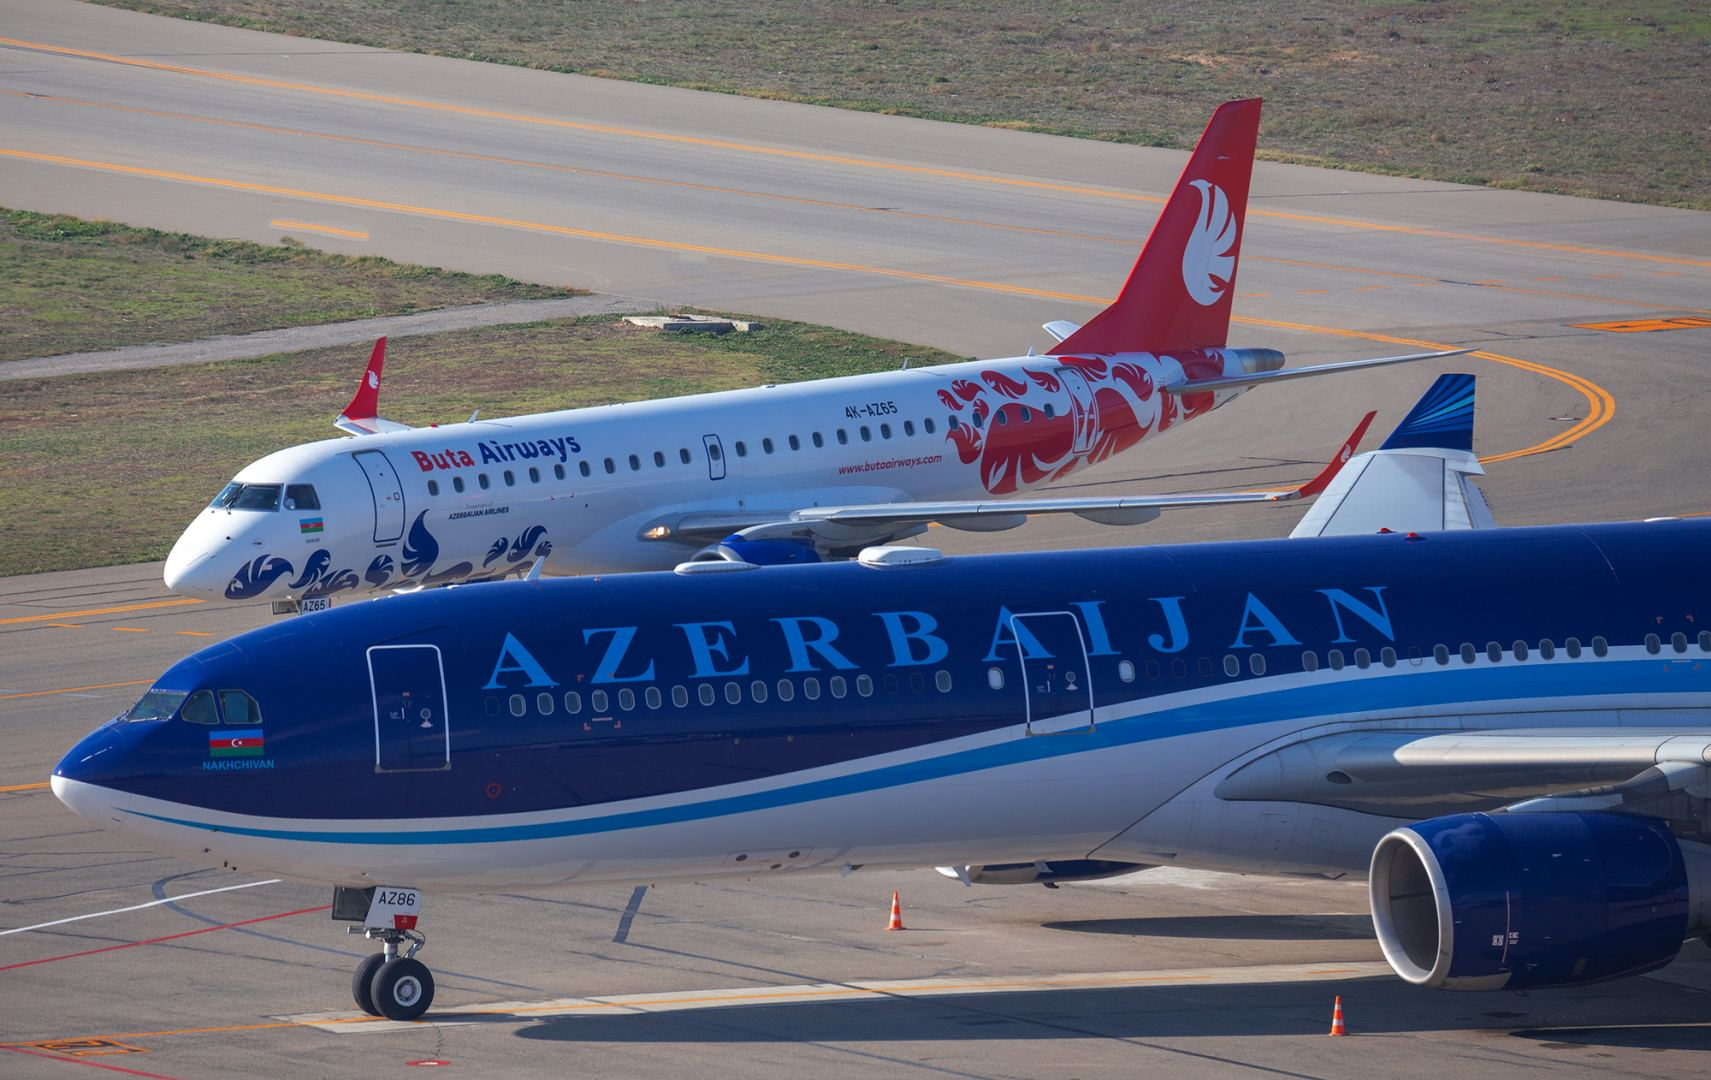 Azerbaijan's national air carrier is ready to exchange air tickets for all destinations